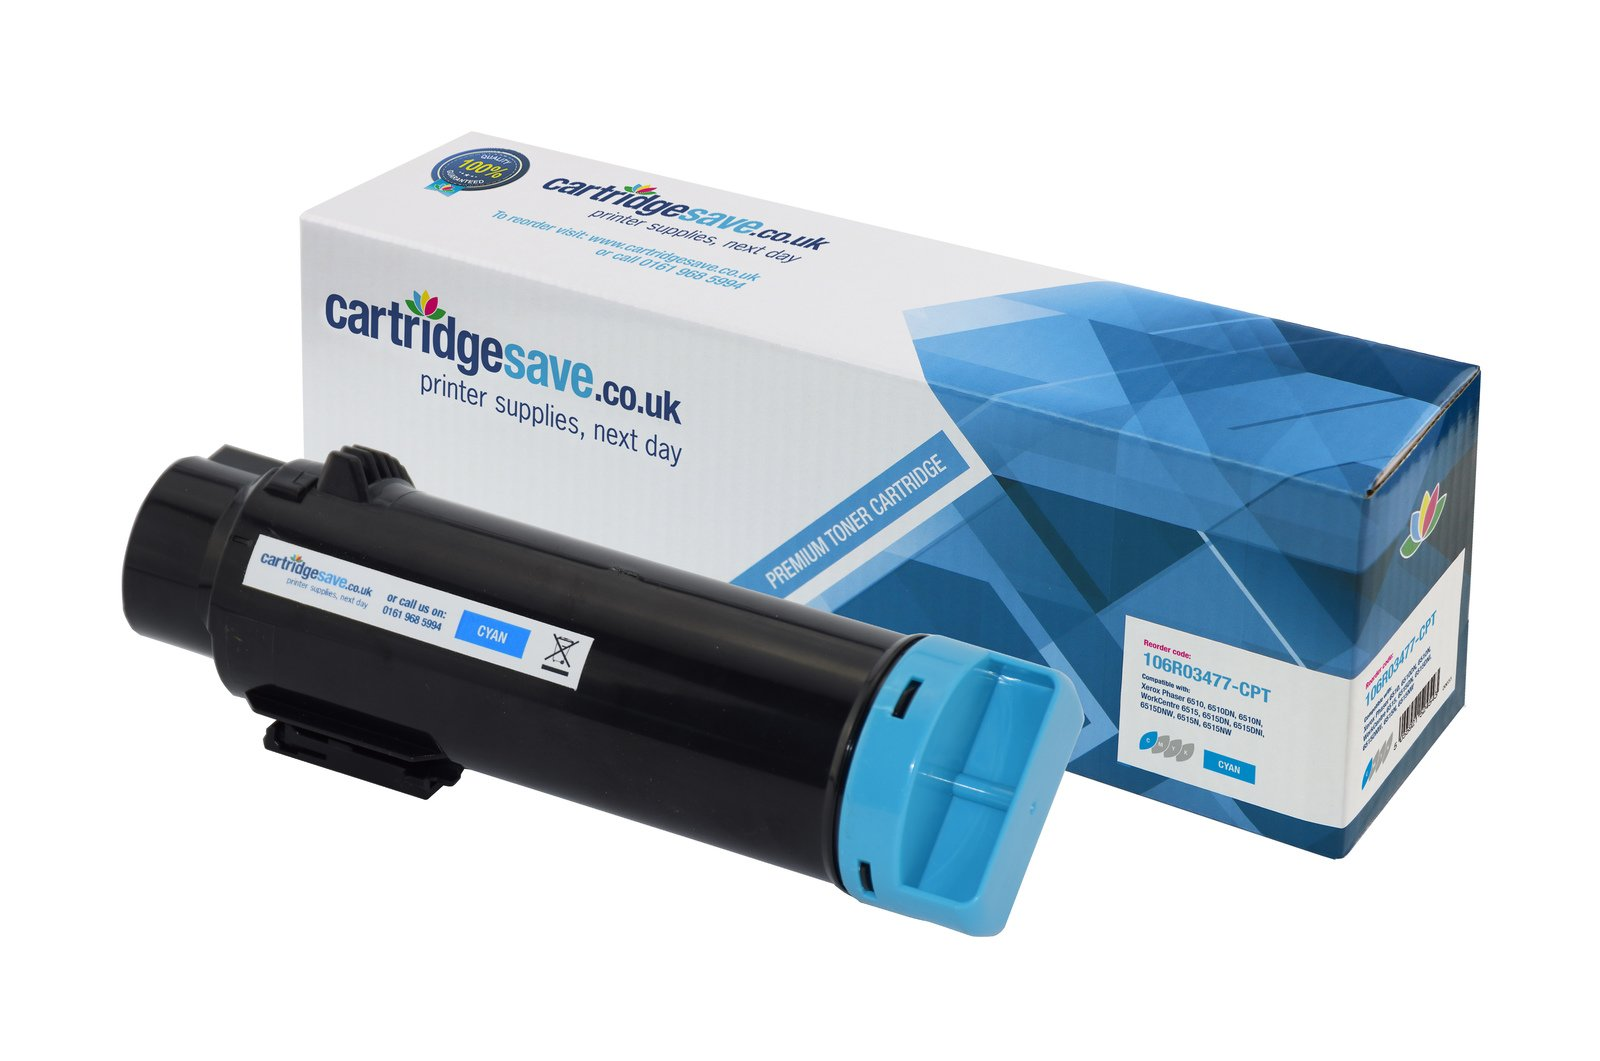 Compatible Cyan High Capacity Xerox 106R03477 Toner Cartridge - (106R03477)